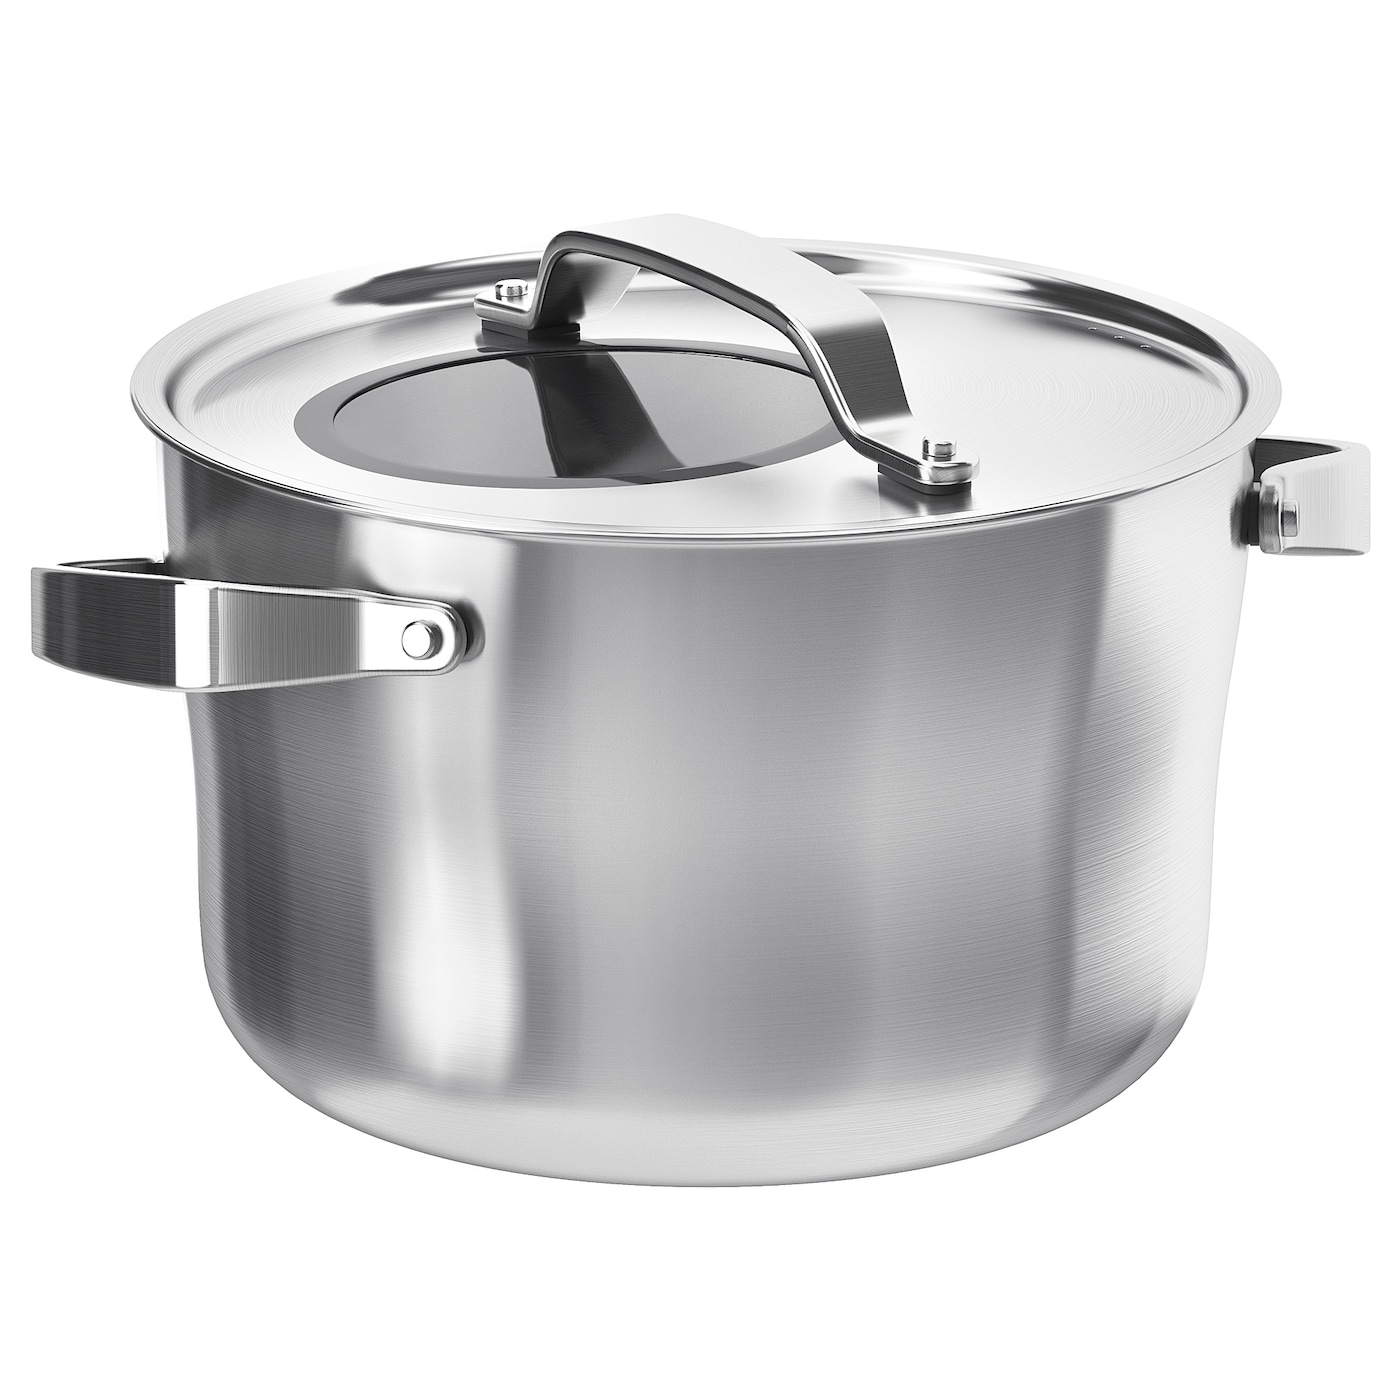 IKEA SENSUELL pot with lid 25 year guarantee. Read about the terms in the guarantee brochure.